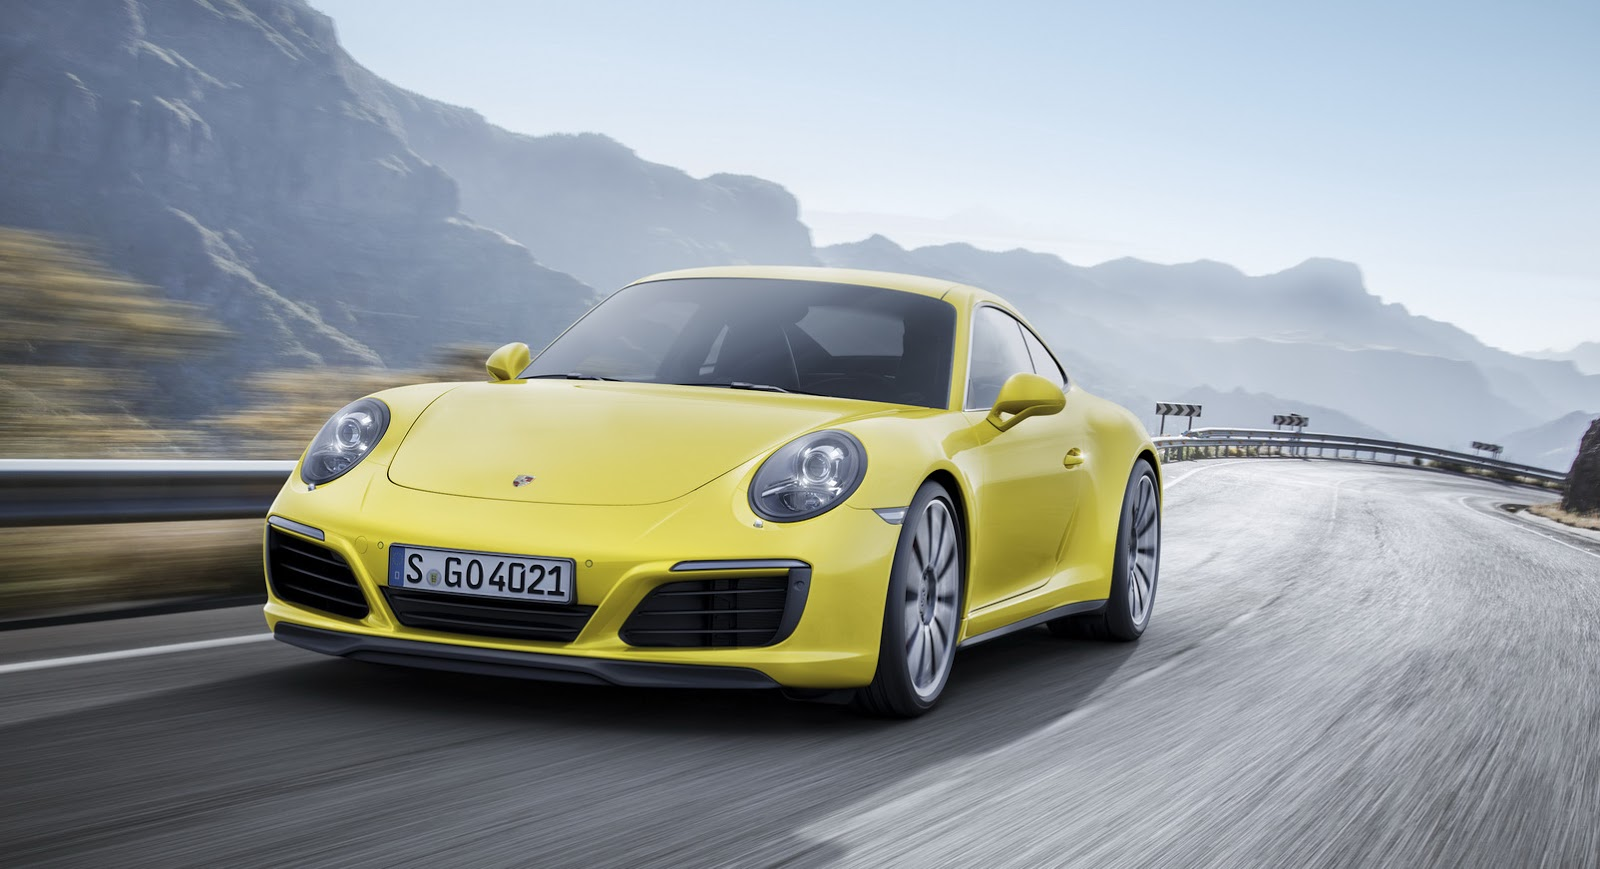 Porsche Rolls Out Turbo D 911 Carrera 4 S And Targa 4 S